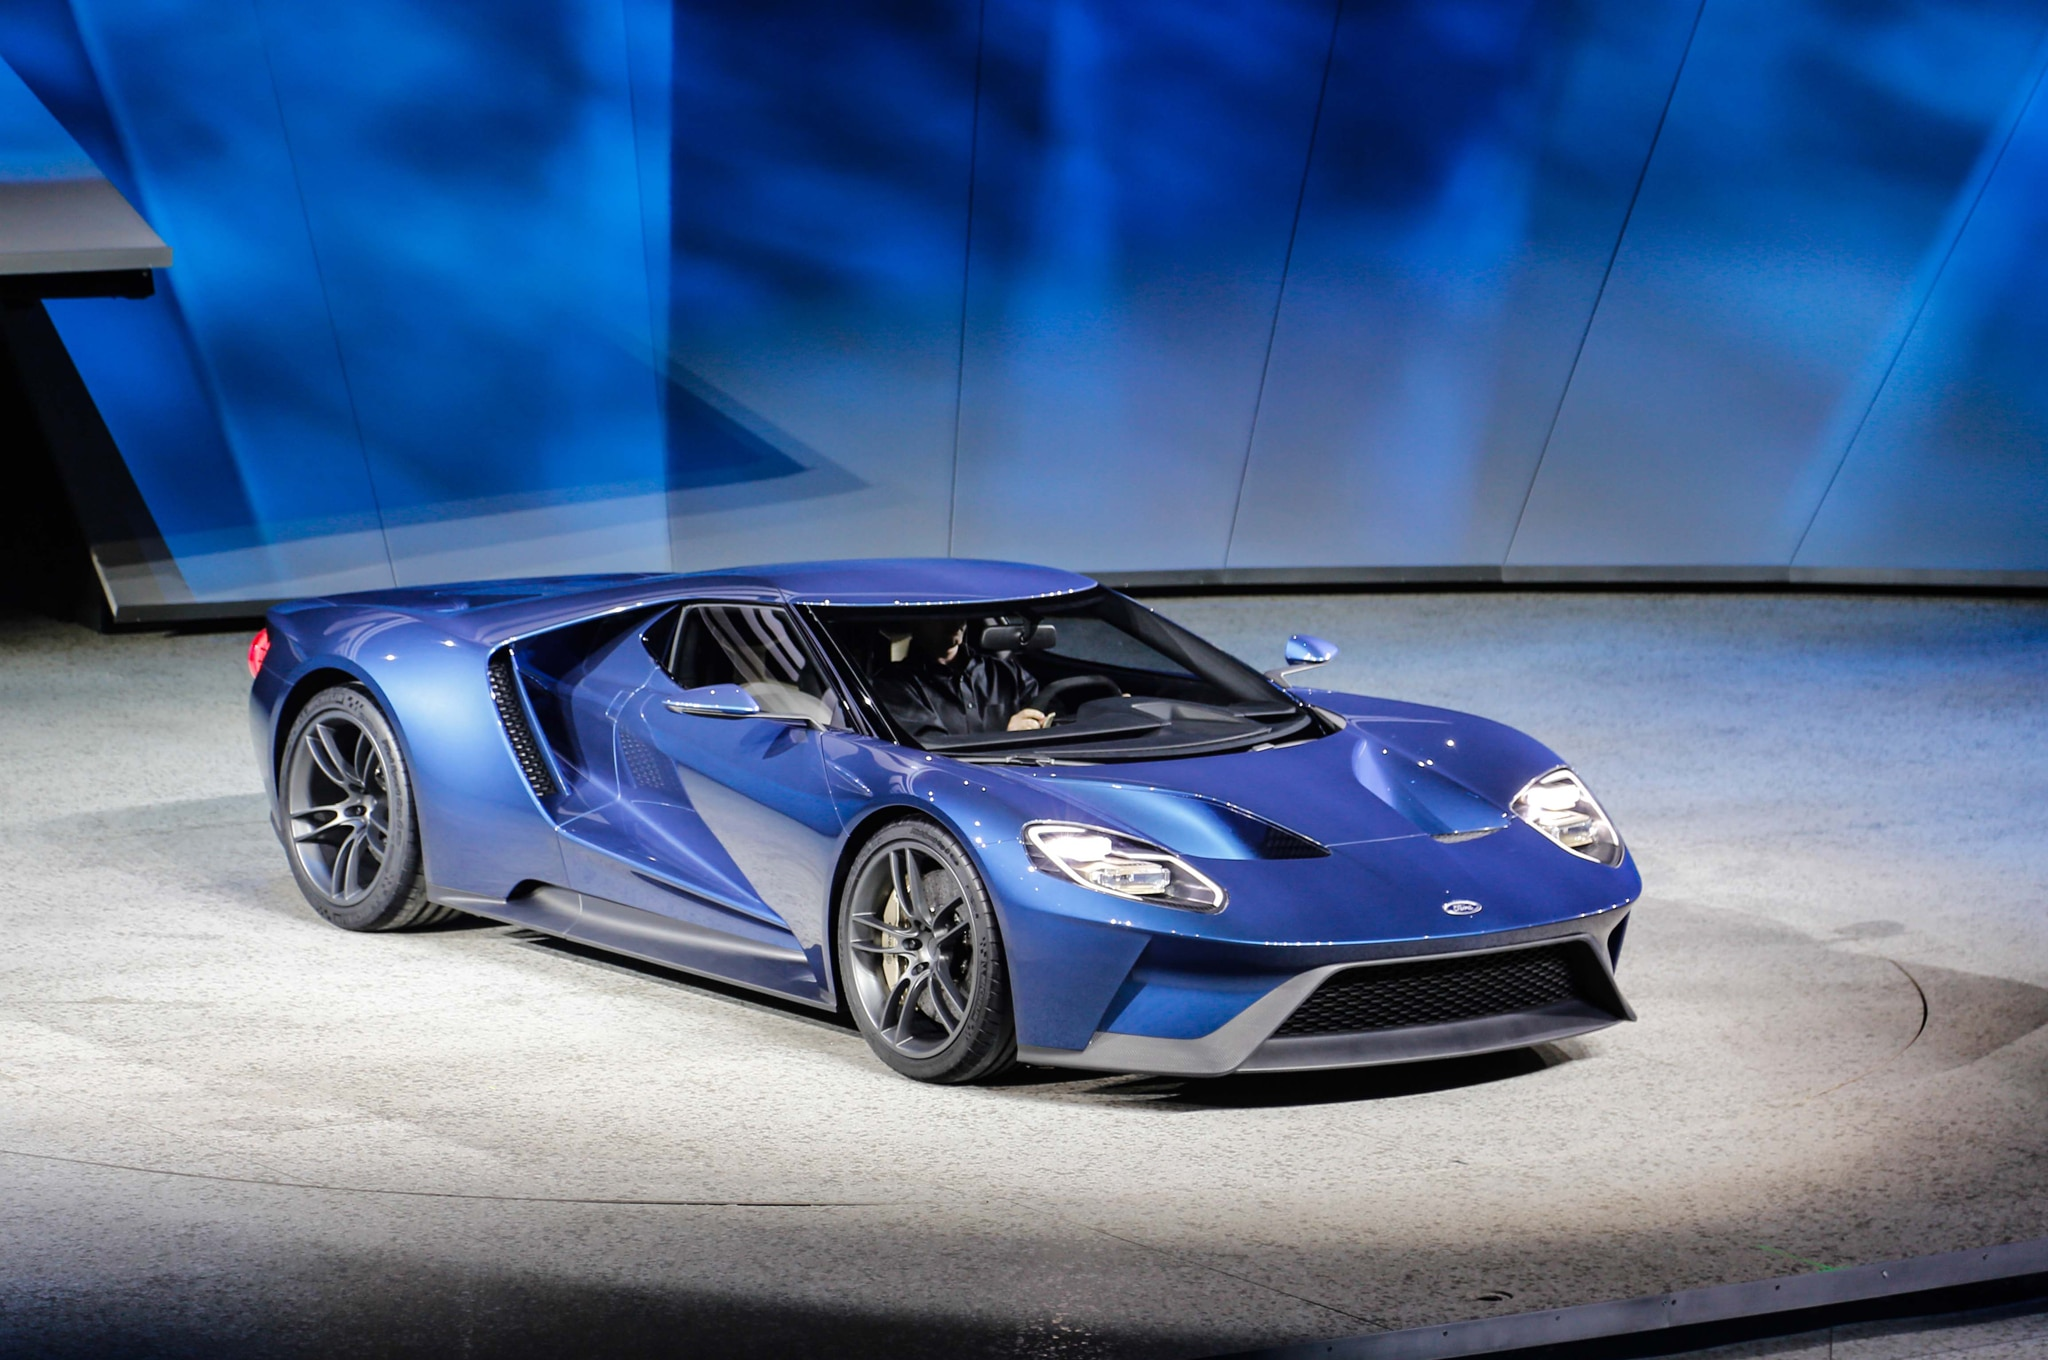 Supercar Face-Off: Ford GT Vs. Acura NSX